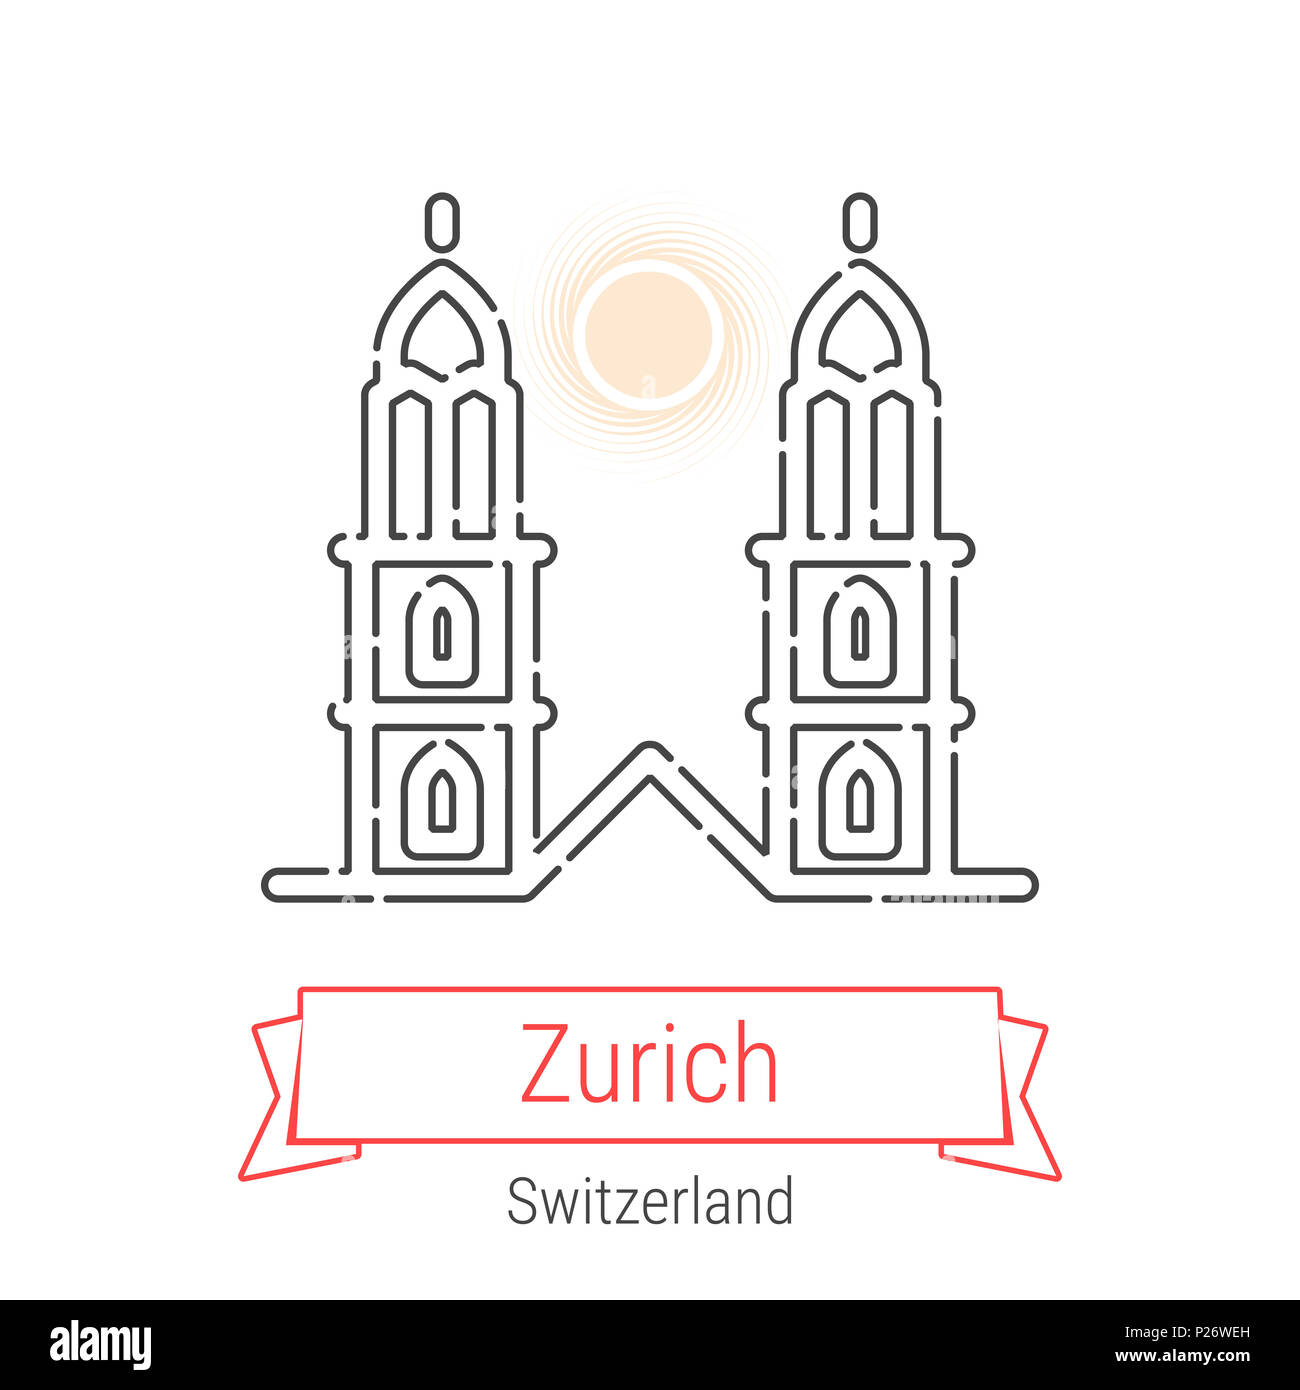 Zurich, Switzerland Line Icon with Red Ribbon Isolated on White. Zurich Landmark - Emblem - Print - Label - Symbol. Great Minster Church Pictogram. Wo - Stock Image